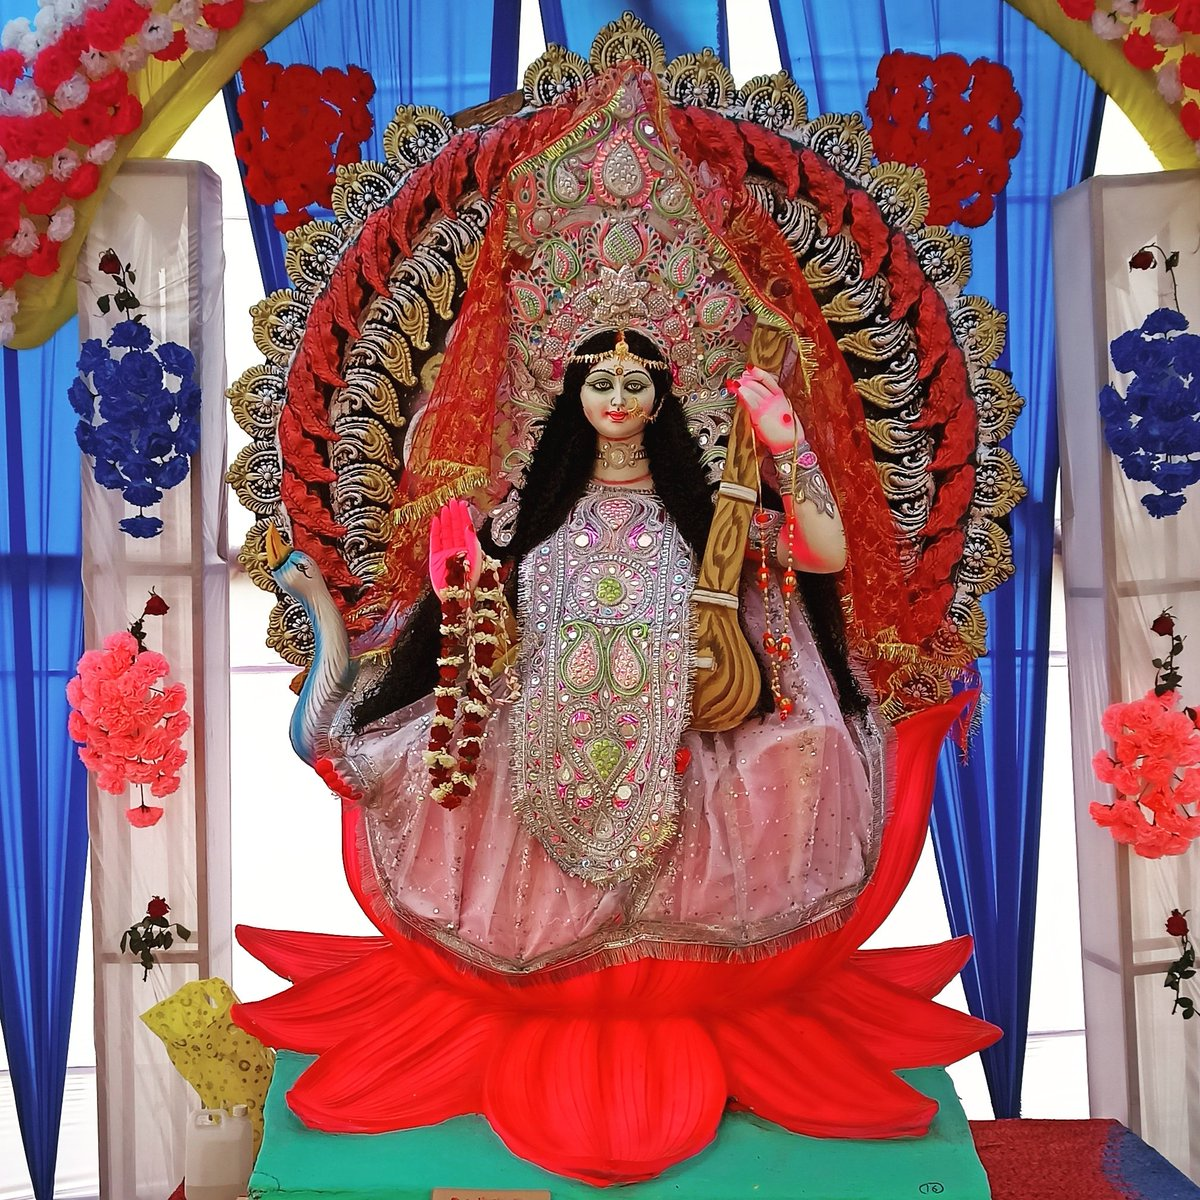 #saraswatipuja 🙏🏻held on the #BasantPanchami Worshippers wear yellow which is associated with #Wisdom and #prosperity Statues are also draped in yellow silk and believers pray for blessings on their #Pens #books and #musicalinstruments  Cavendish Hostel Patna Science College 4/n